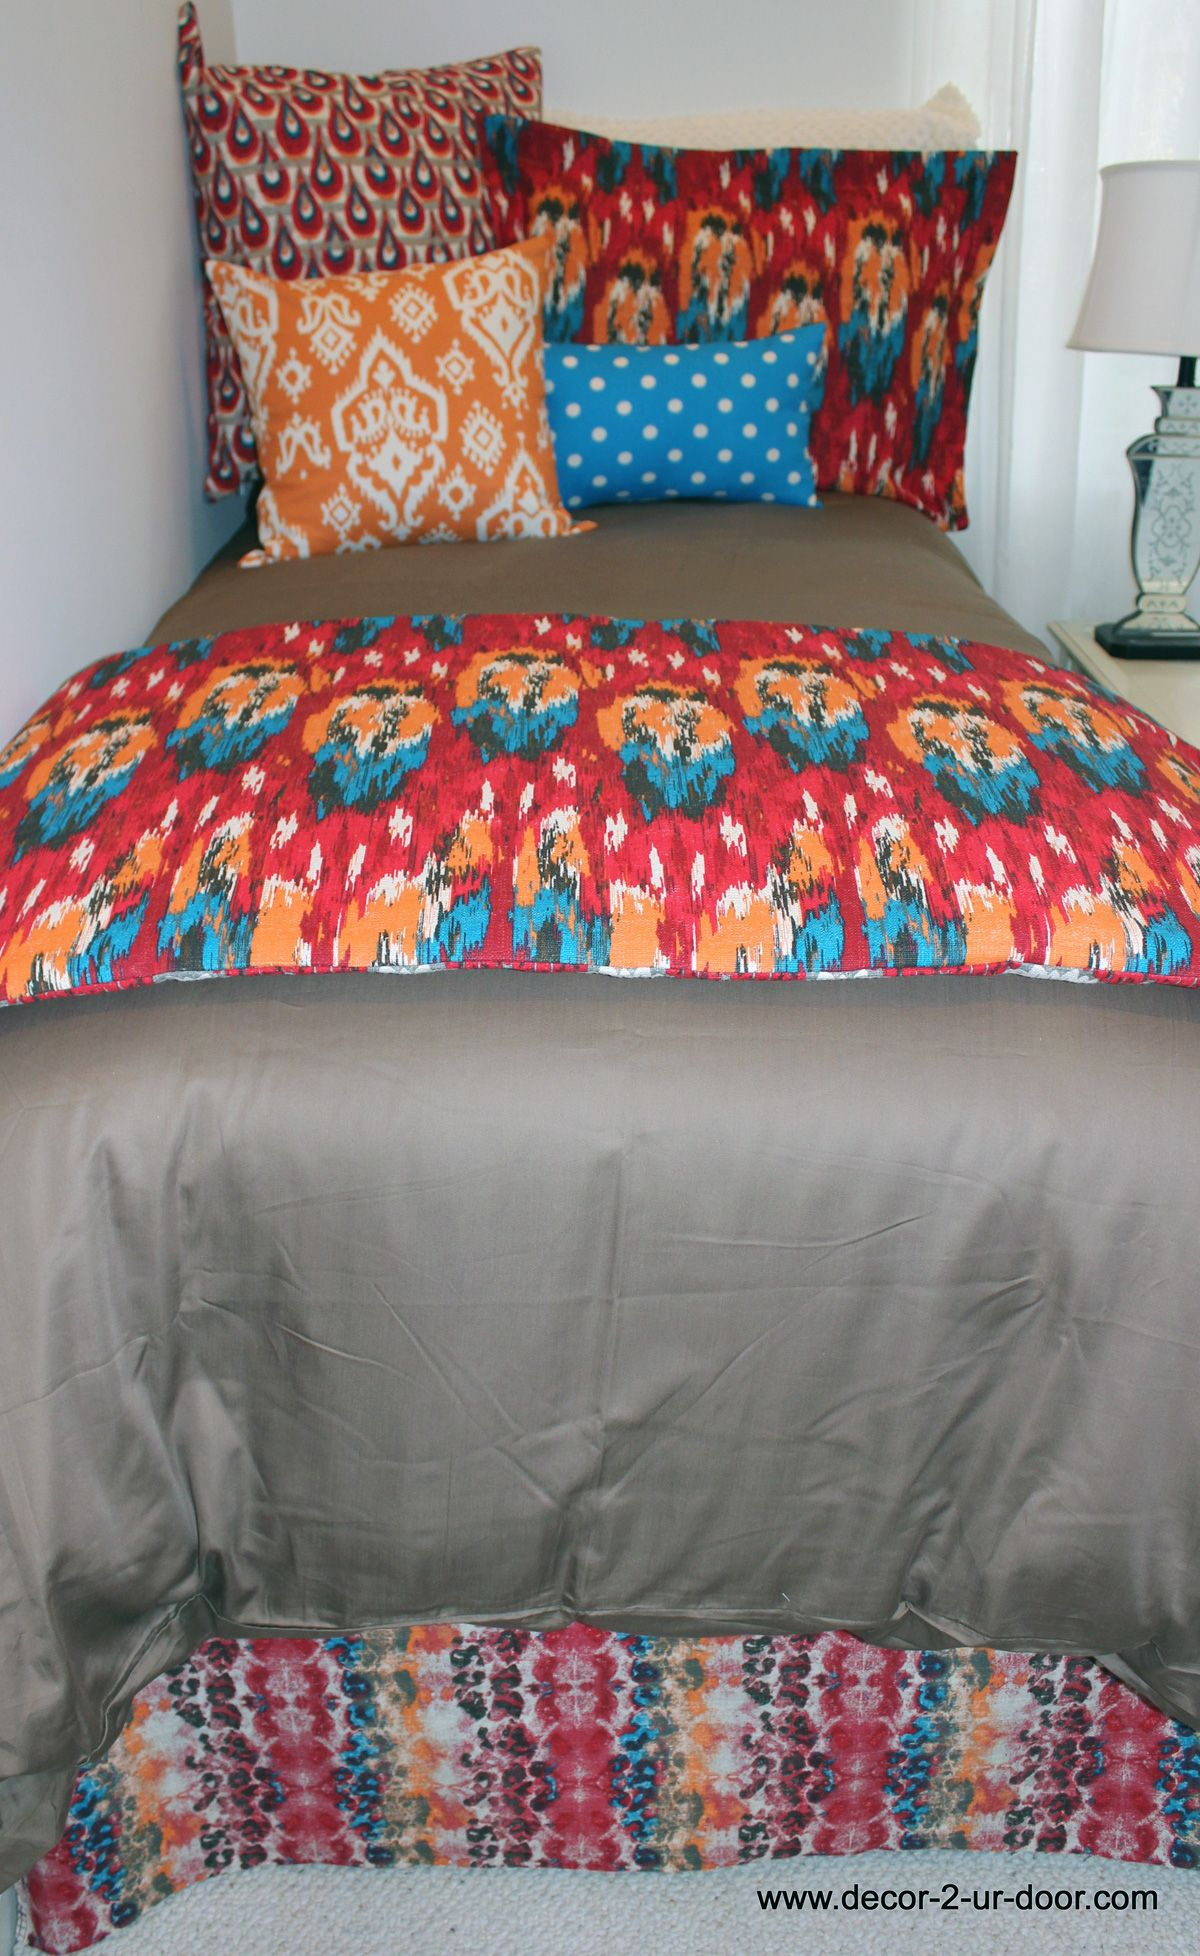 Anthropologie inspired bed in a bag set designer headboard custom